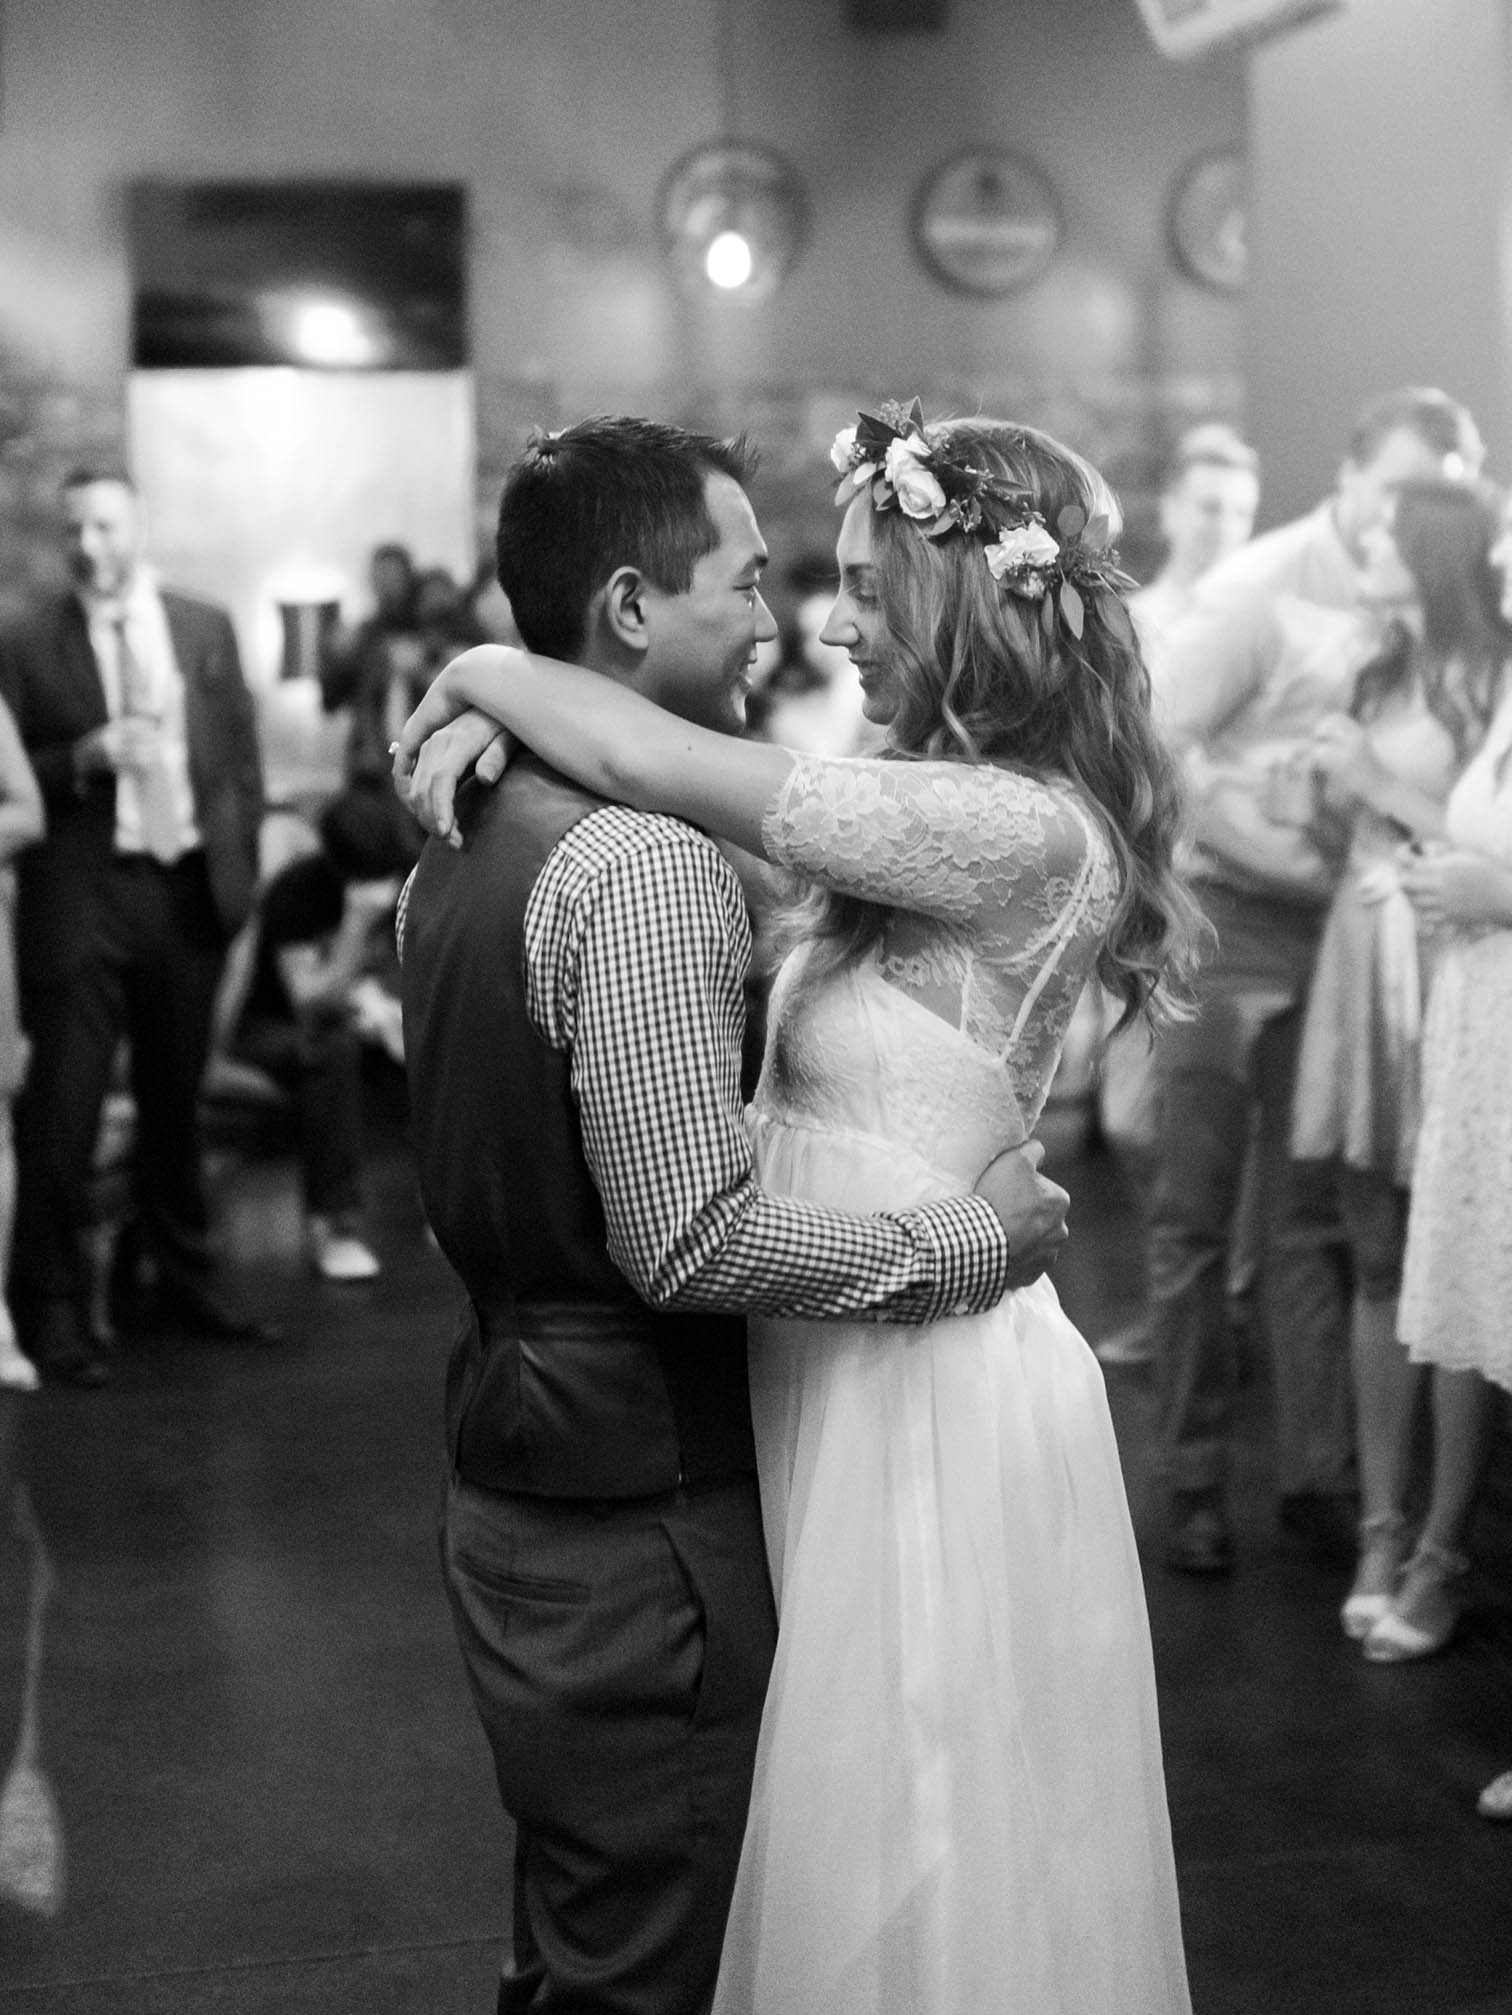 Colorado Weddings, Bride Groom First Dance, Colorado Photographers, Best Destination Weddings, Danielle DeFiore Photography Wedding Receptions